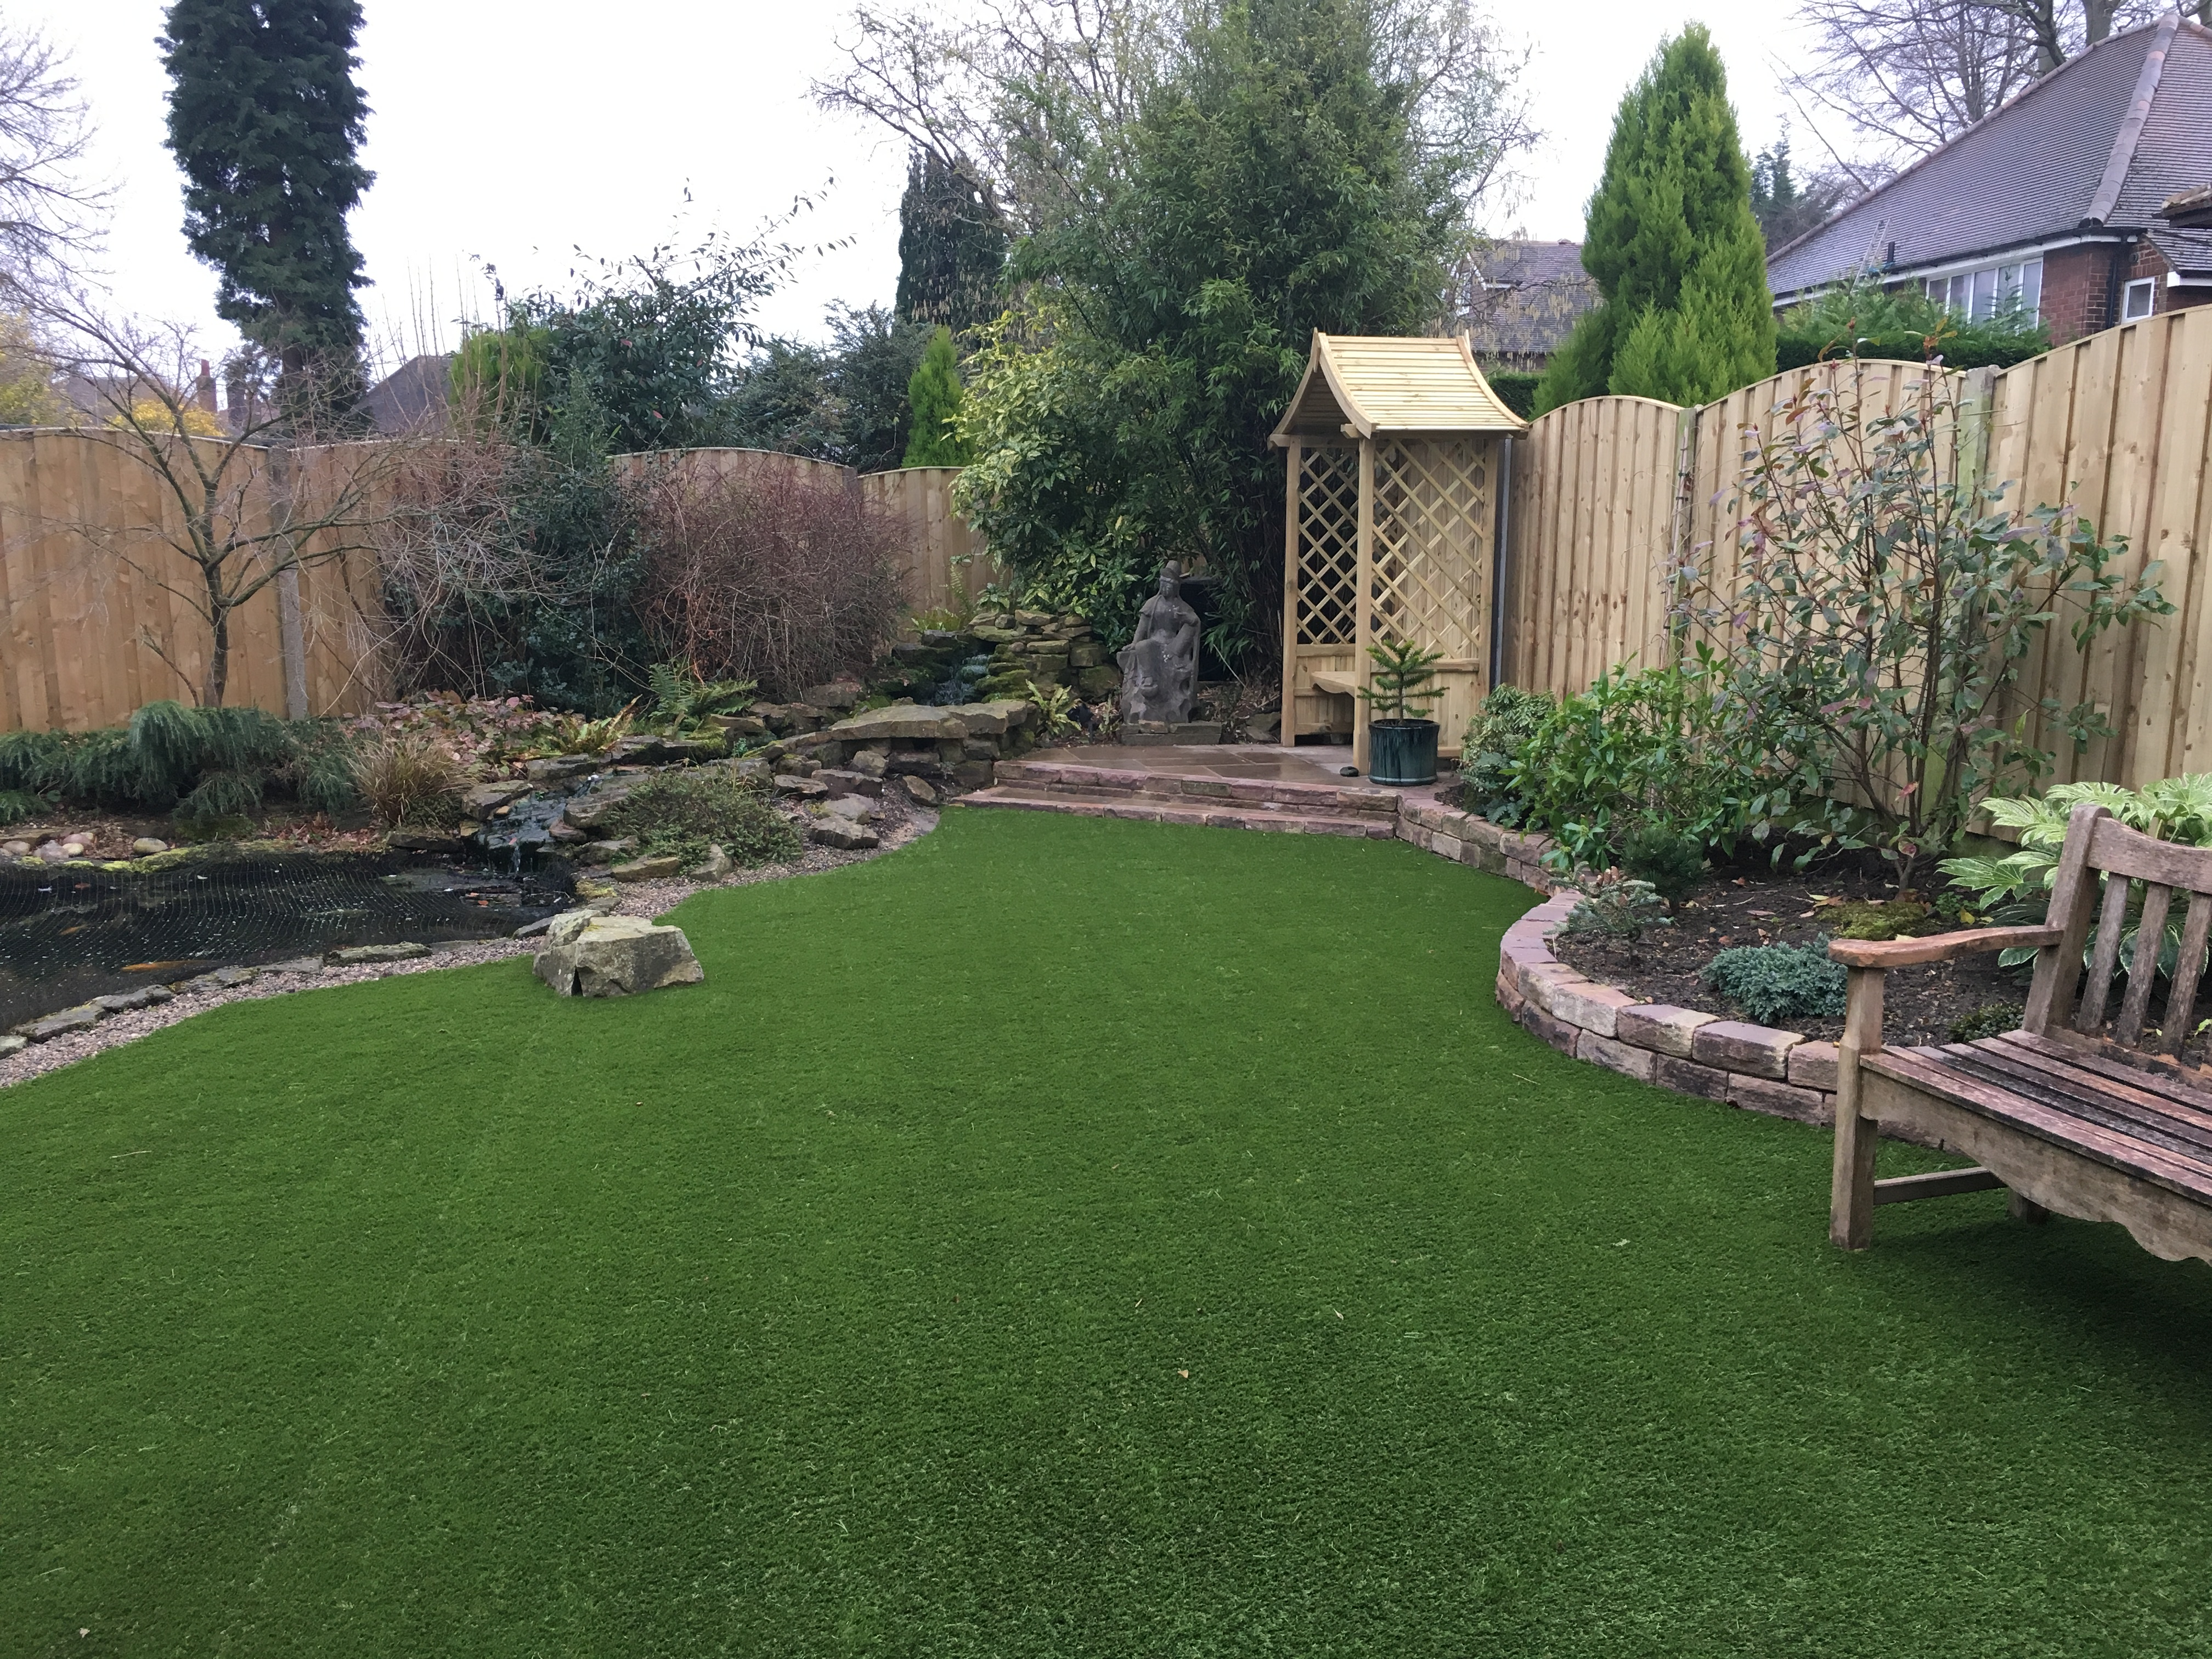 Garden Maintenance in Wilmslow